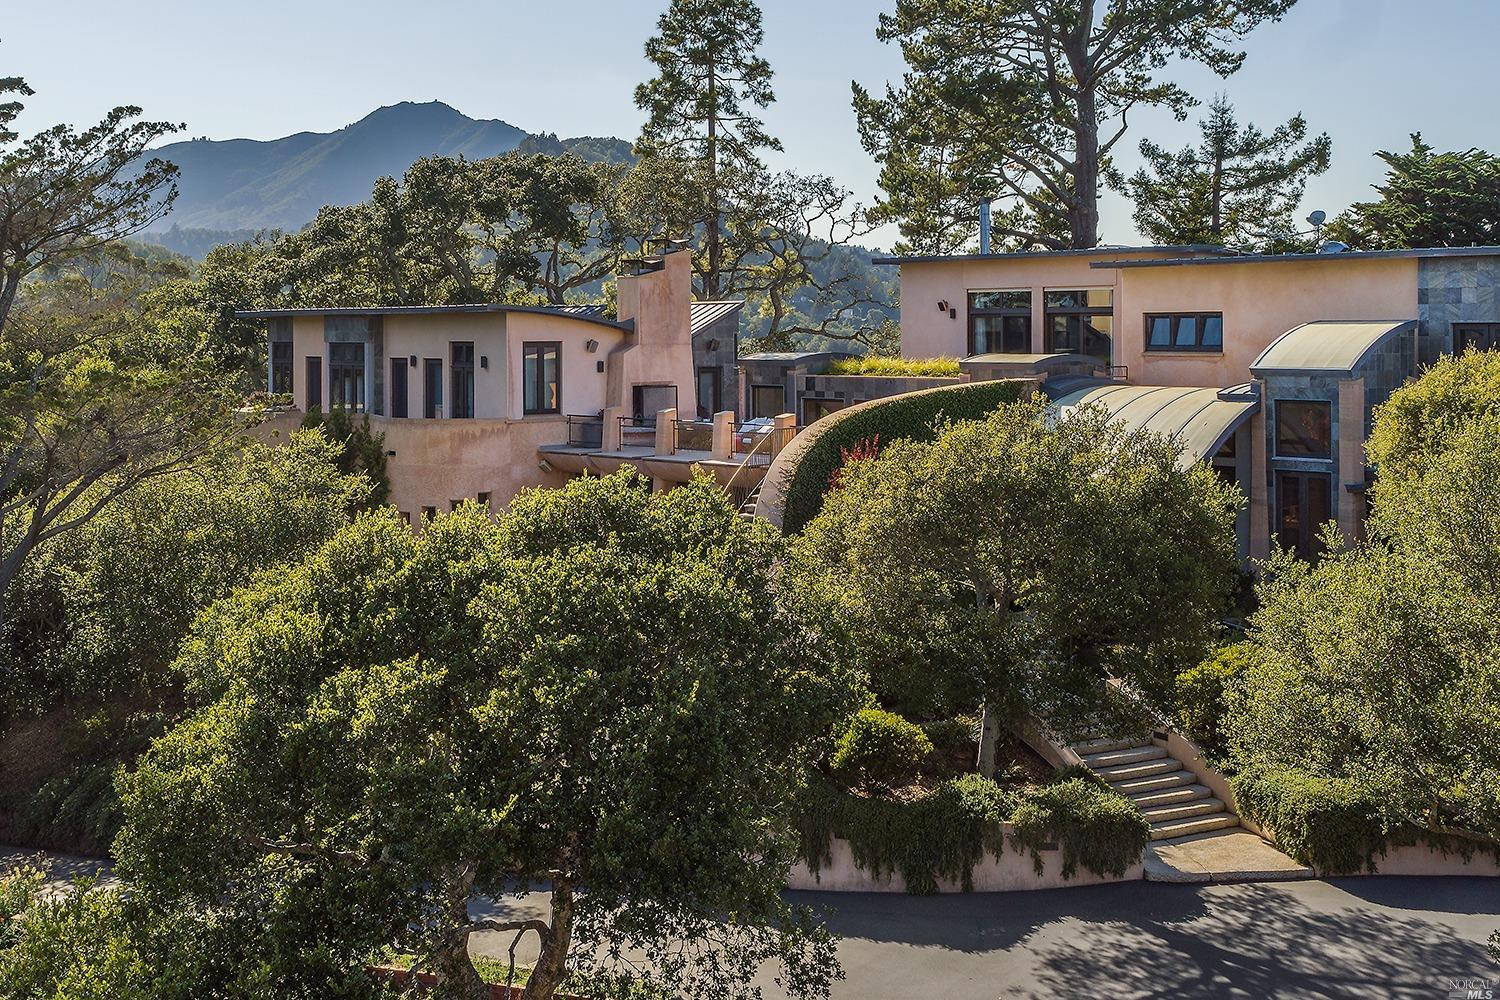 WeWork founder's Corte Madera mansion with a 3-story water slide hits the market